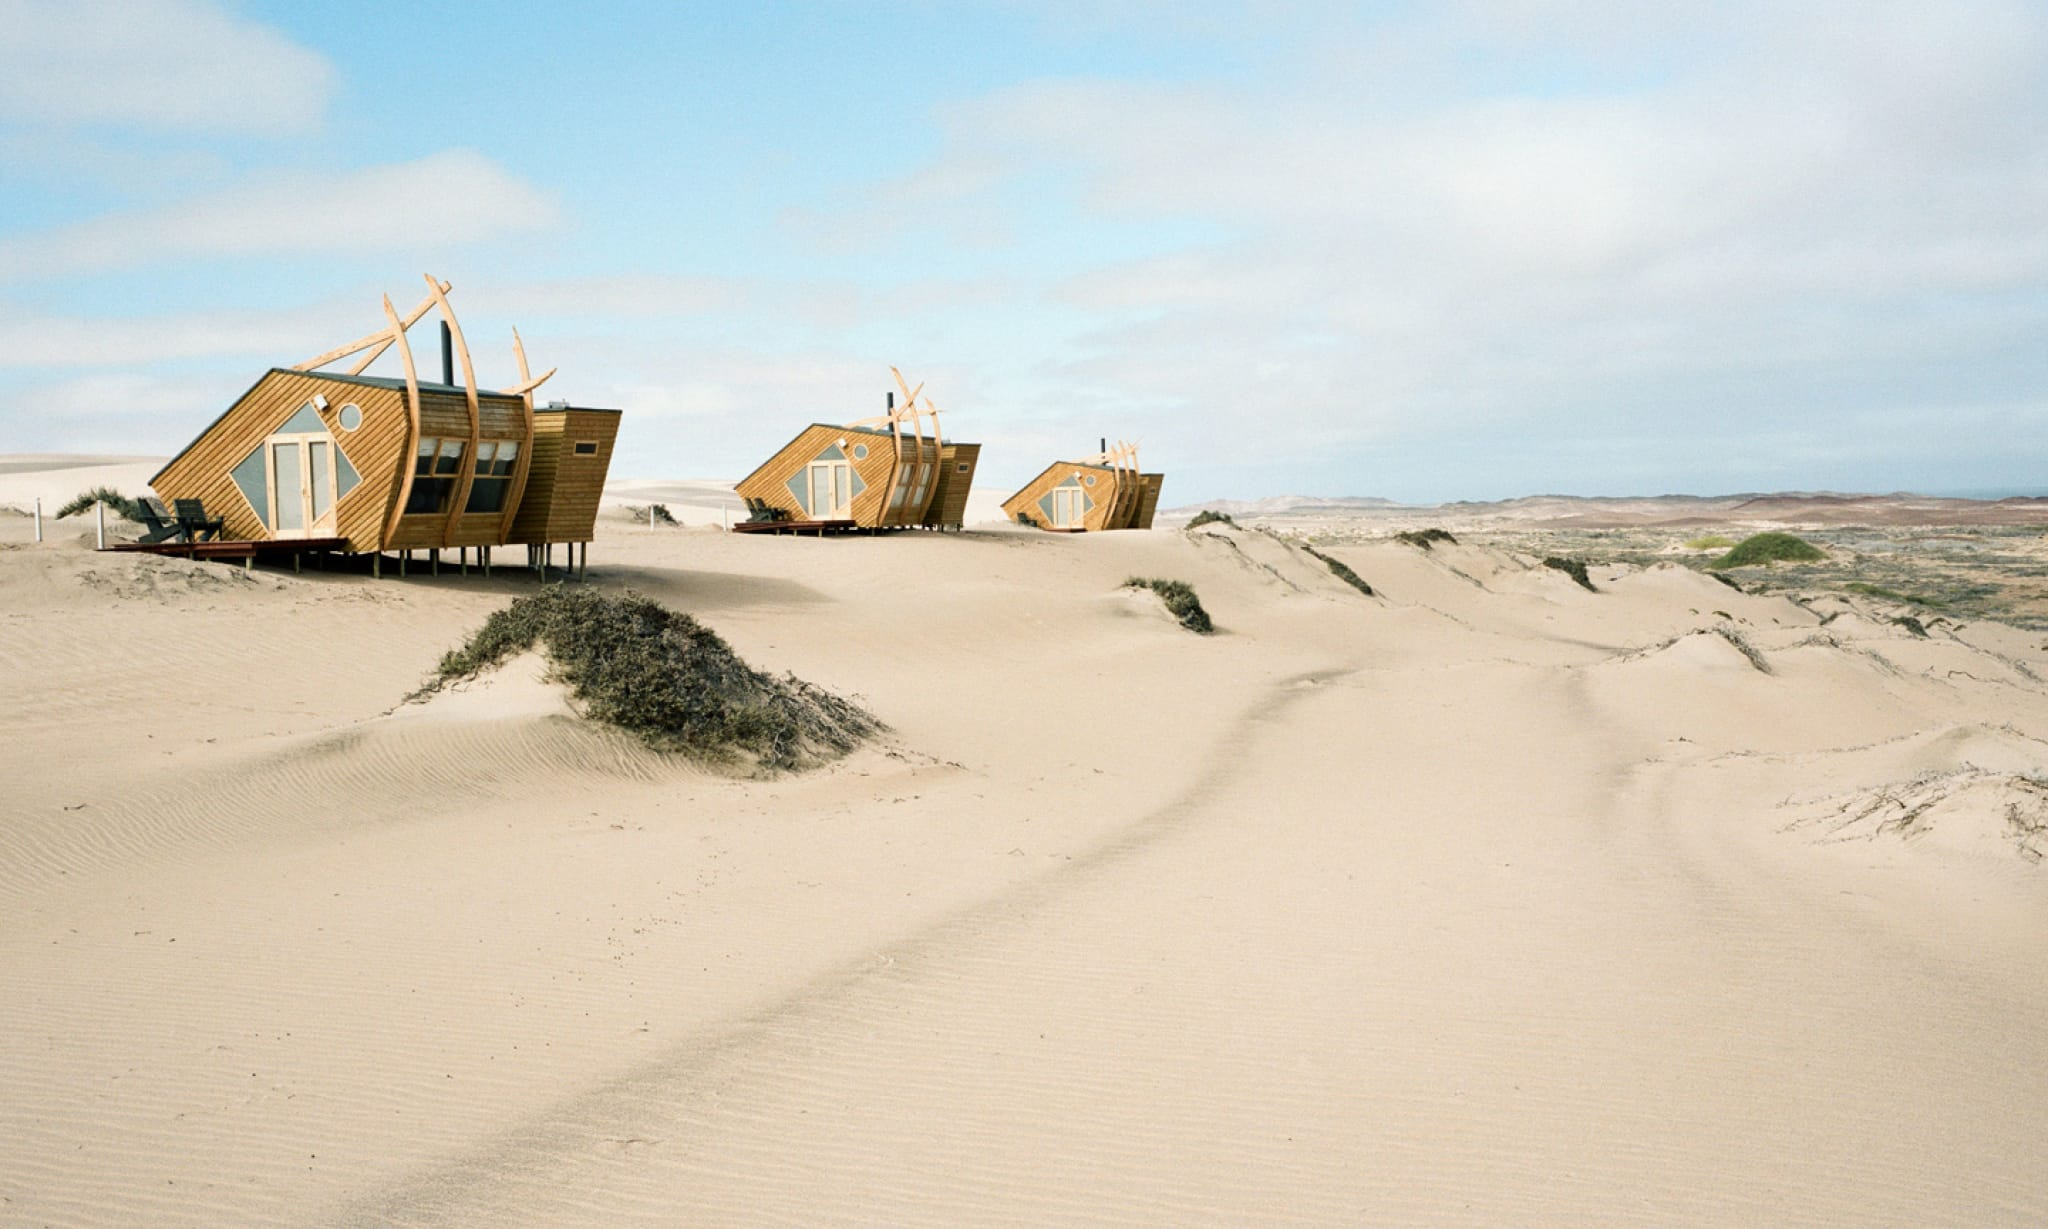 Three wooden buildings perched on a dune in the desert.